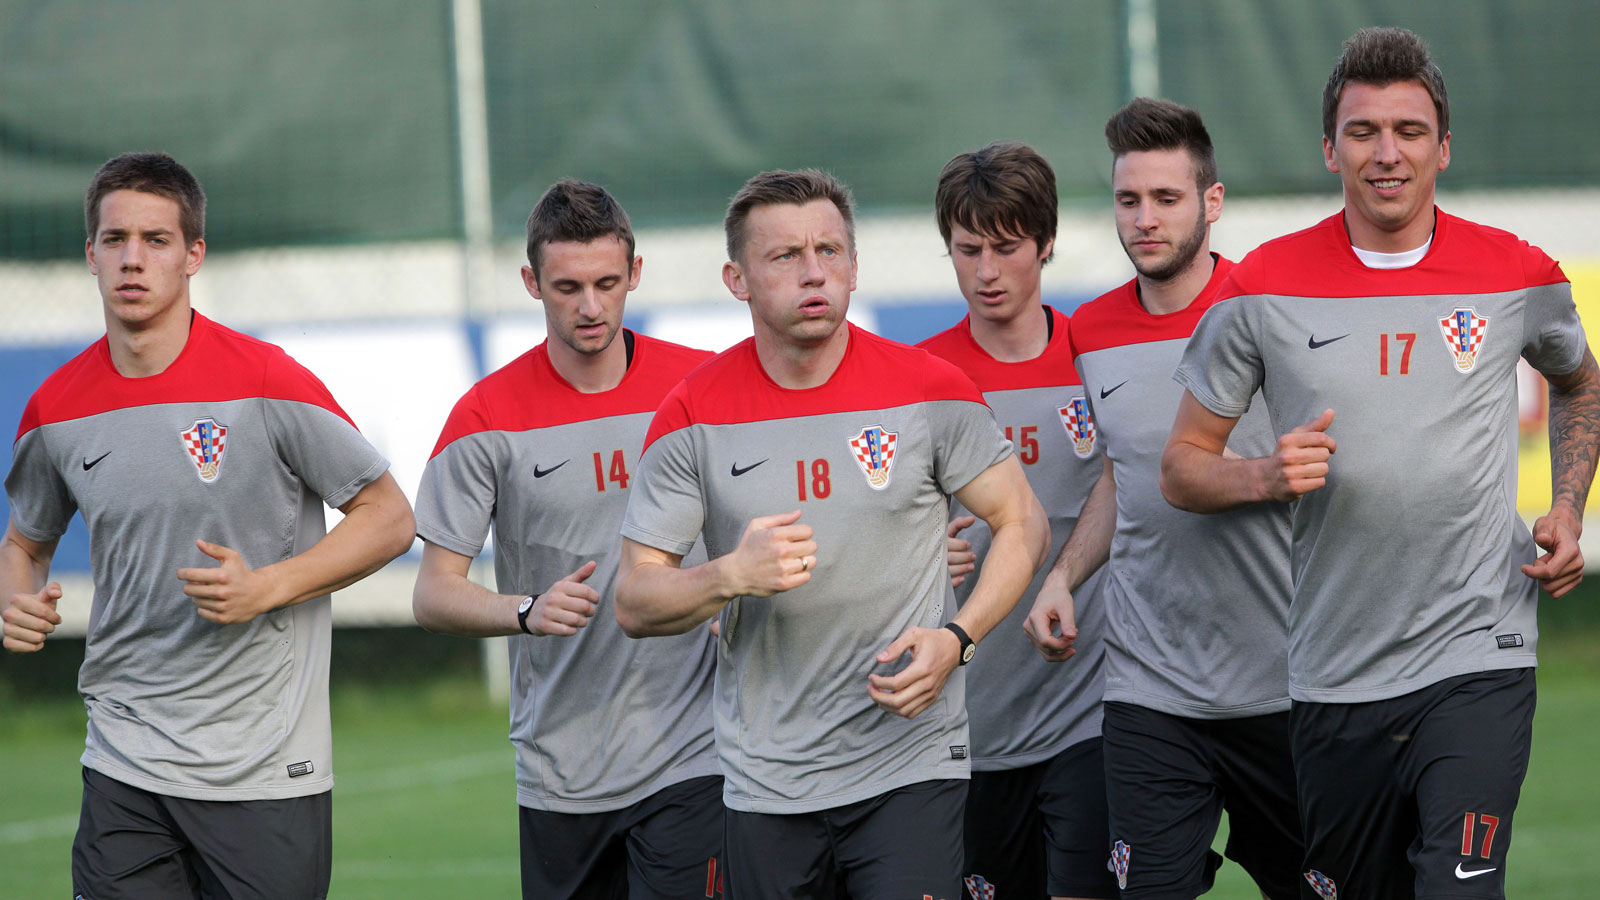 Croatia-2014-NIKE-training-kit.jpg